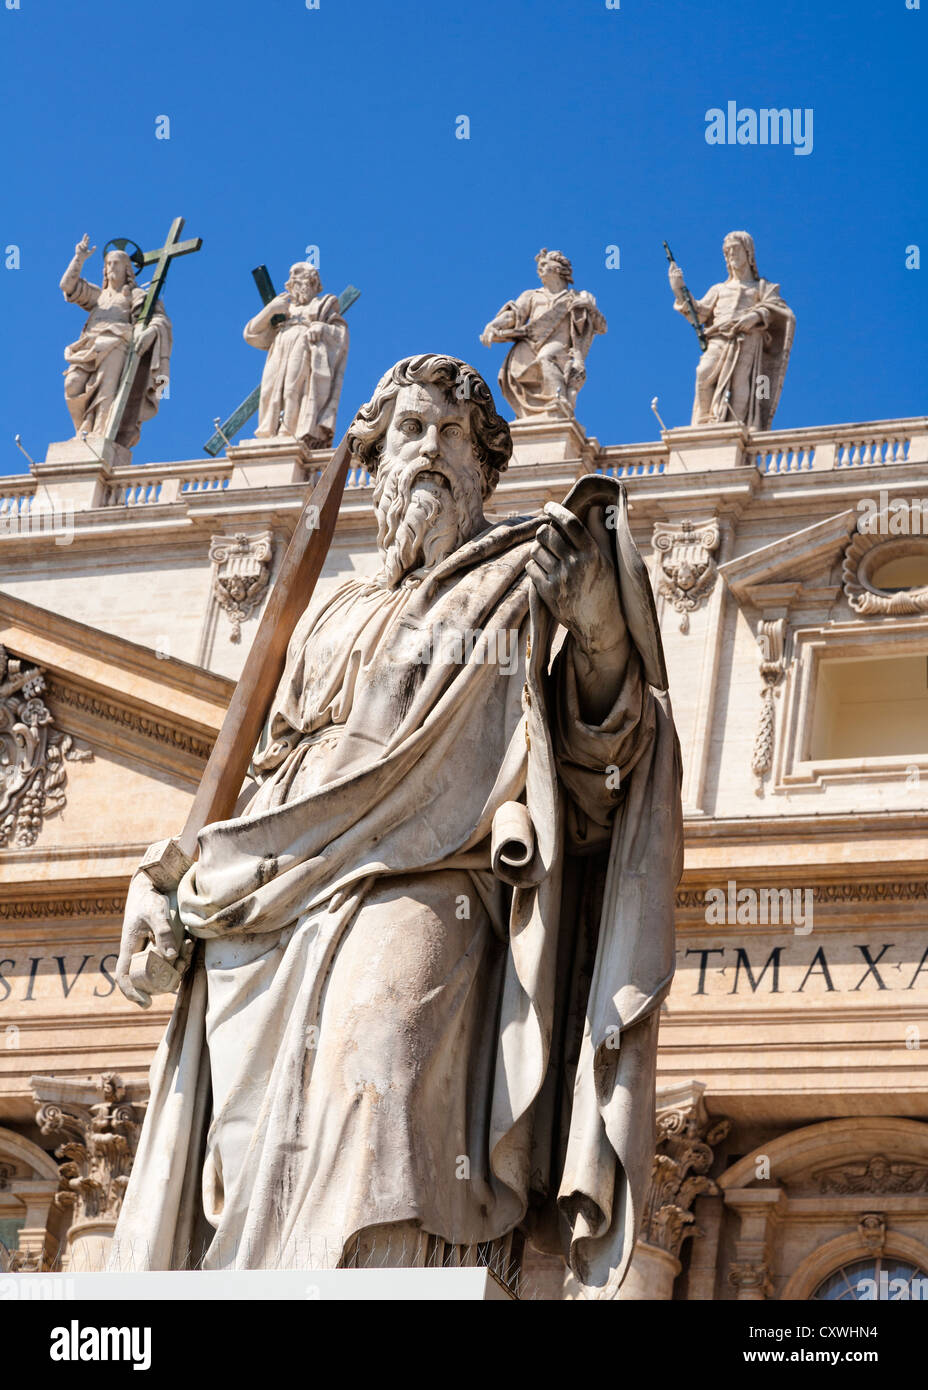 Statue Of Saint Paul Outside, Saint Peter's Basilica